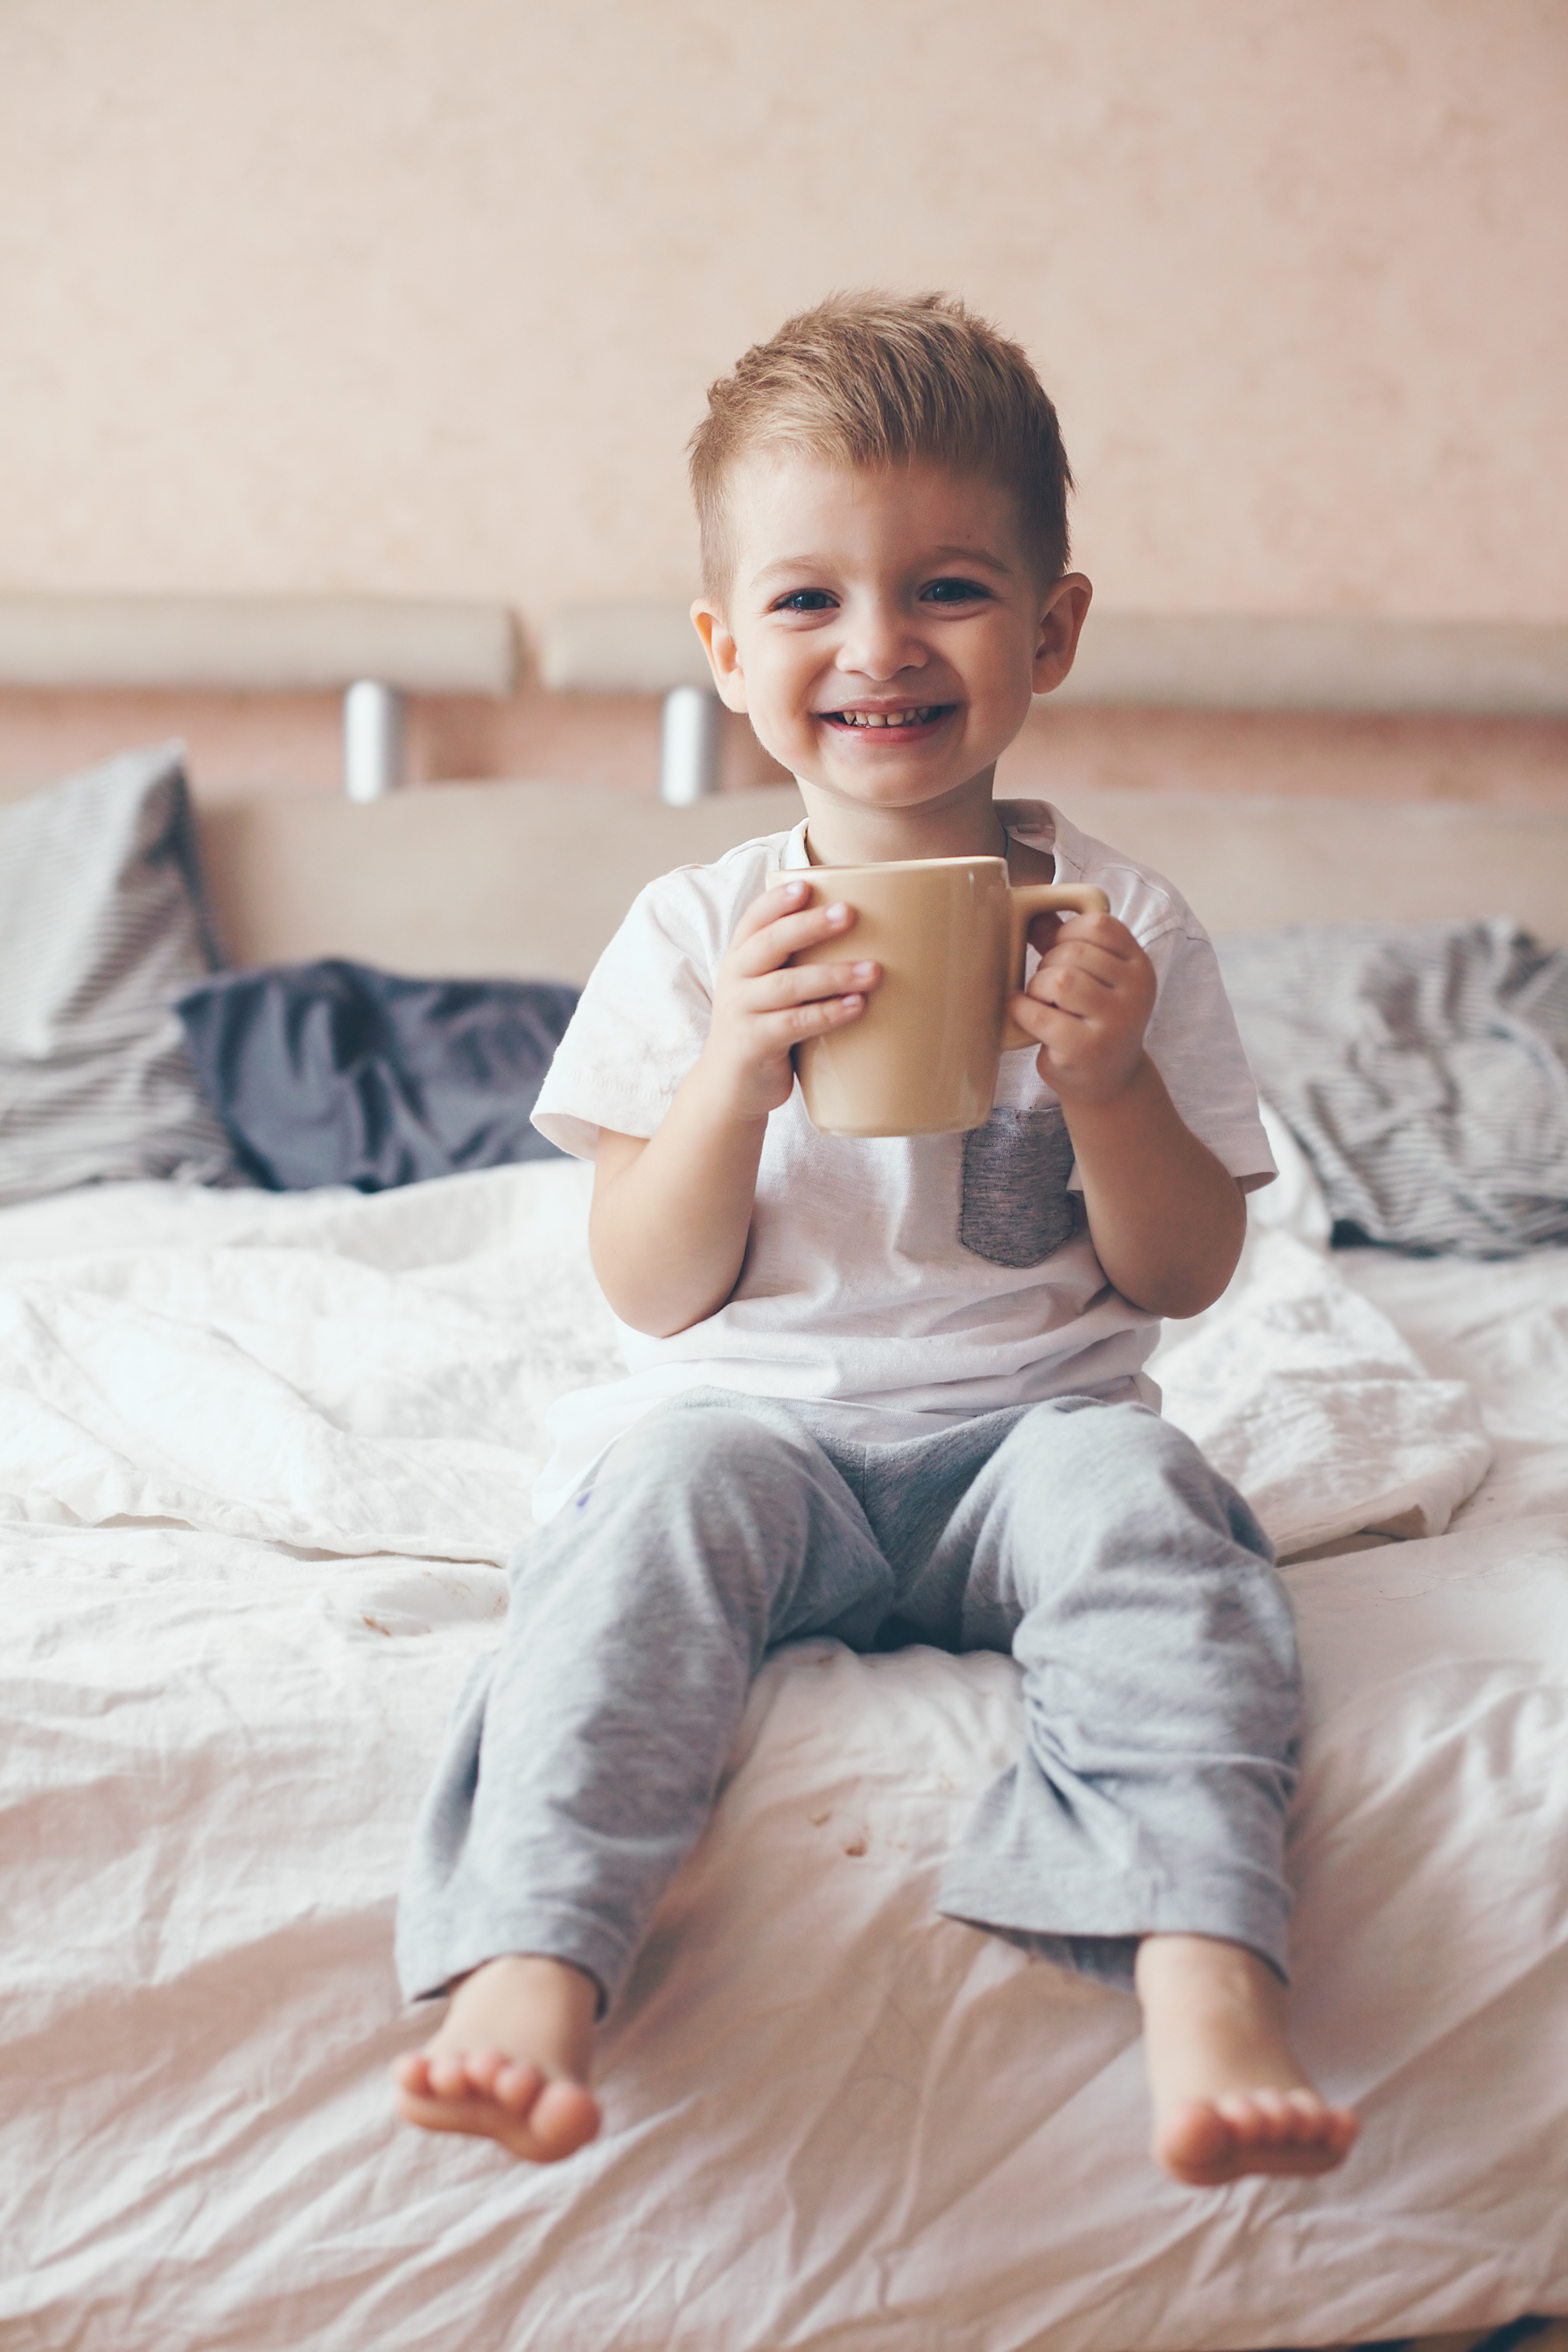 The 5 Real Reasons My Kids Wet the Bed